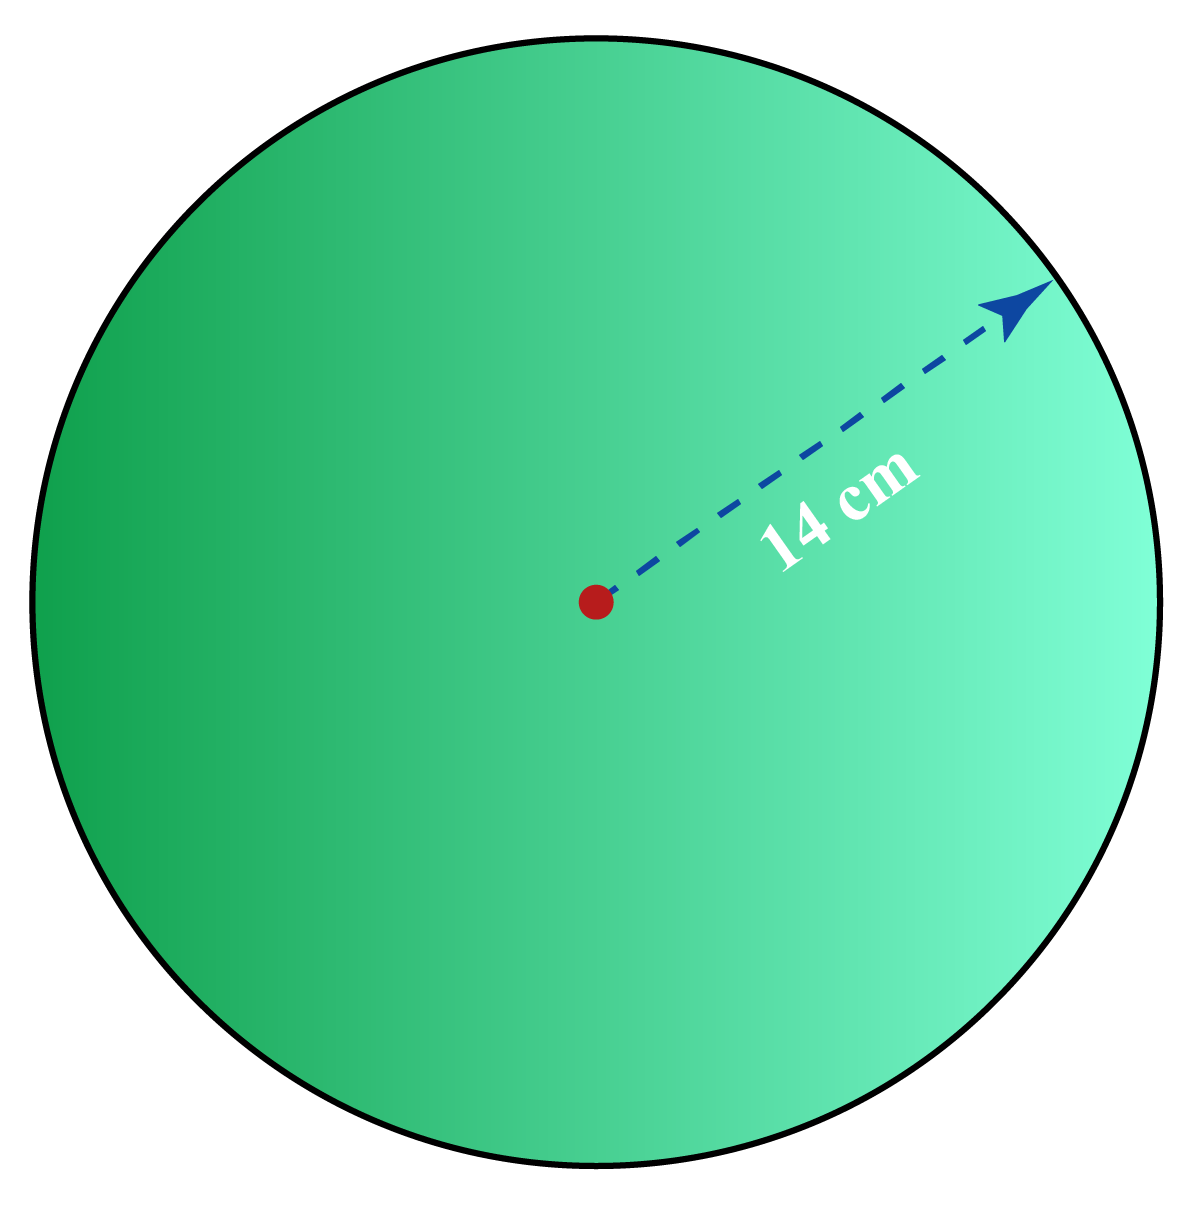 A circle with radius 14 cm is given. Find its area.